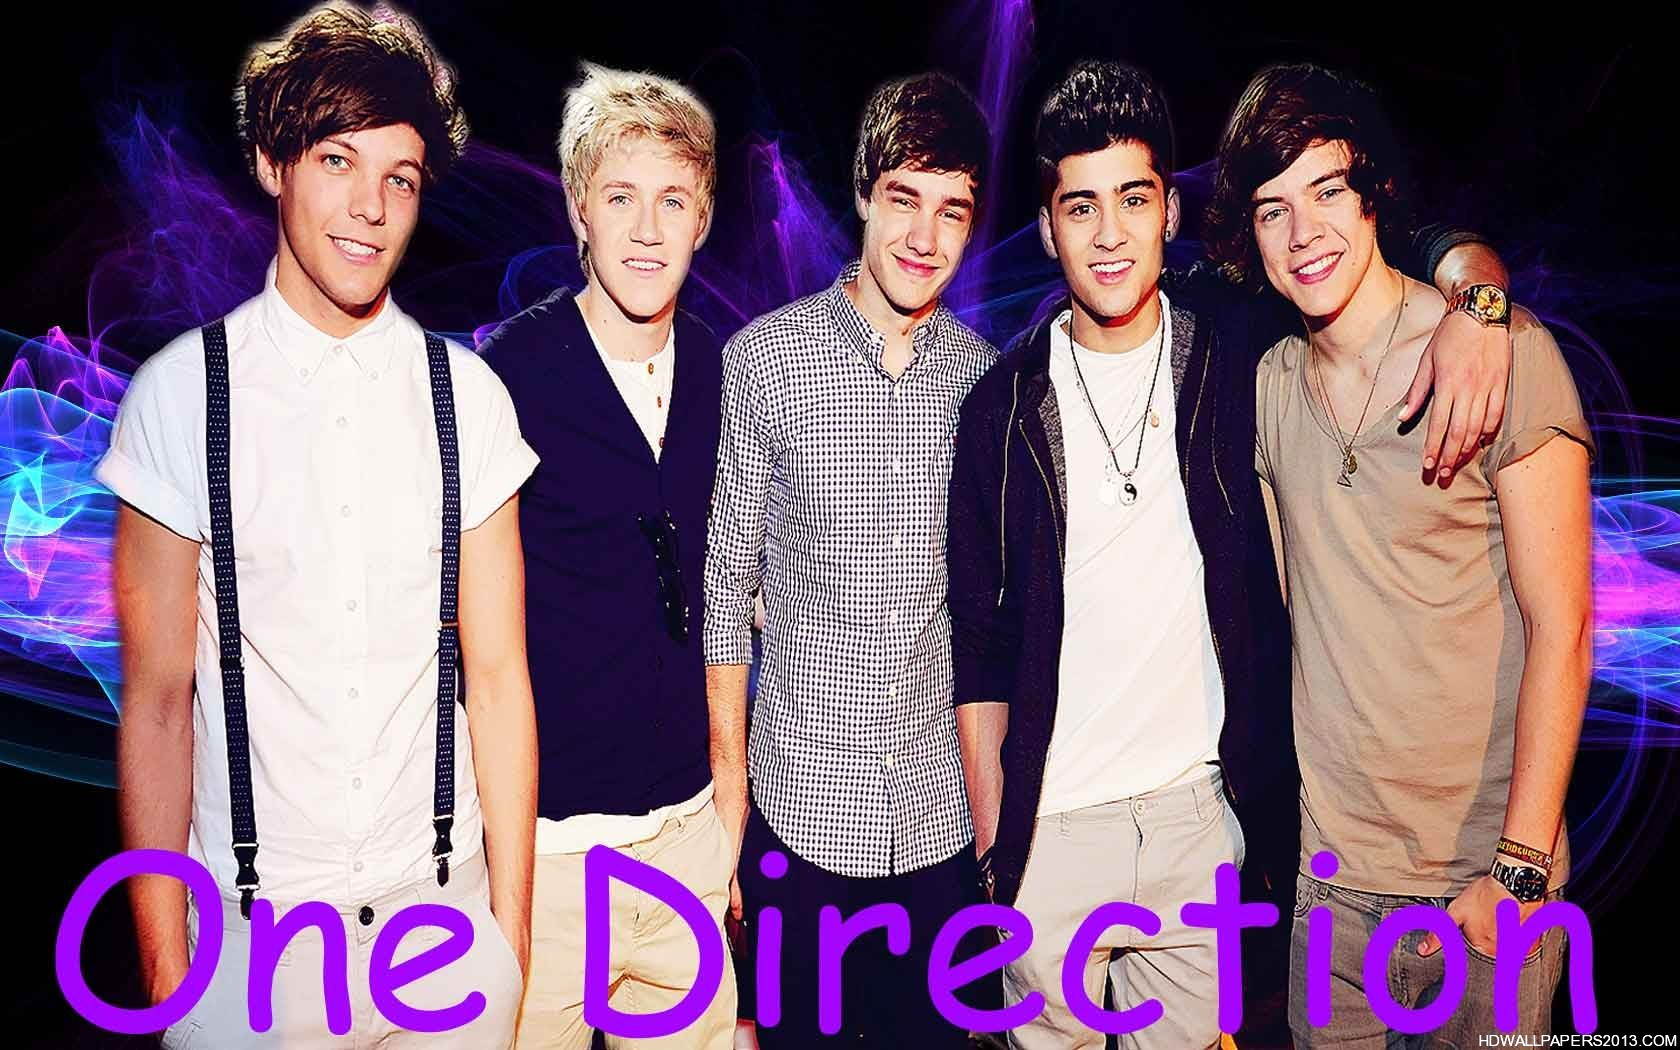 One Direction Wallpaper Hd - Wanted And One Direction - HD Wallpaper